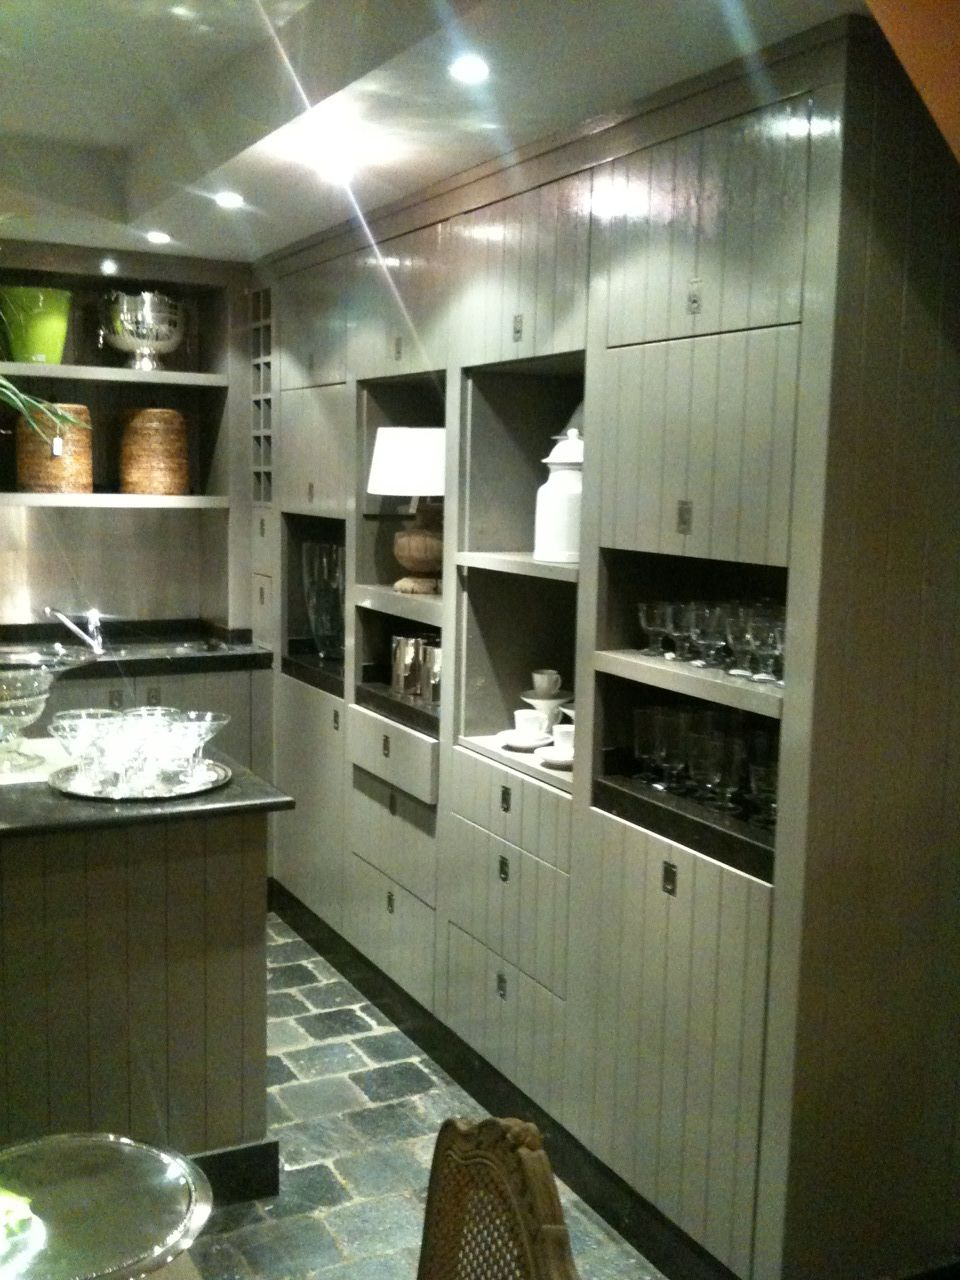 Kitchen Cabinet configuration for garage wall? | Kitchen Ideas ... on garage with decks, garage with carpeting, garage with drywall, garage with paneling, garage with roof windows, deck kitchen cabinets, garage with landscaping, garage with signs, garage with crown molding, garage with stone, house kitchen cabinets, garage with bath, garage with stairs, garage with outdoor kitchen, garage with mattresses, garage with storage, garage with shelving, garage garage cabinets, garage with living room, garage with doors,